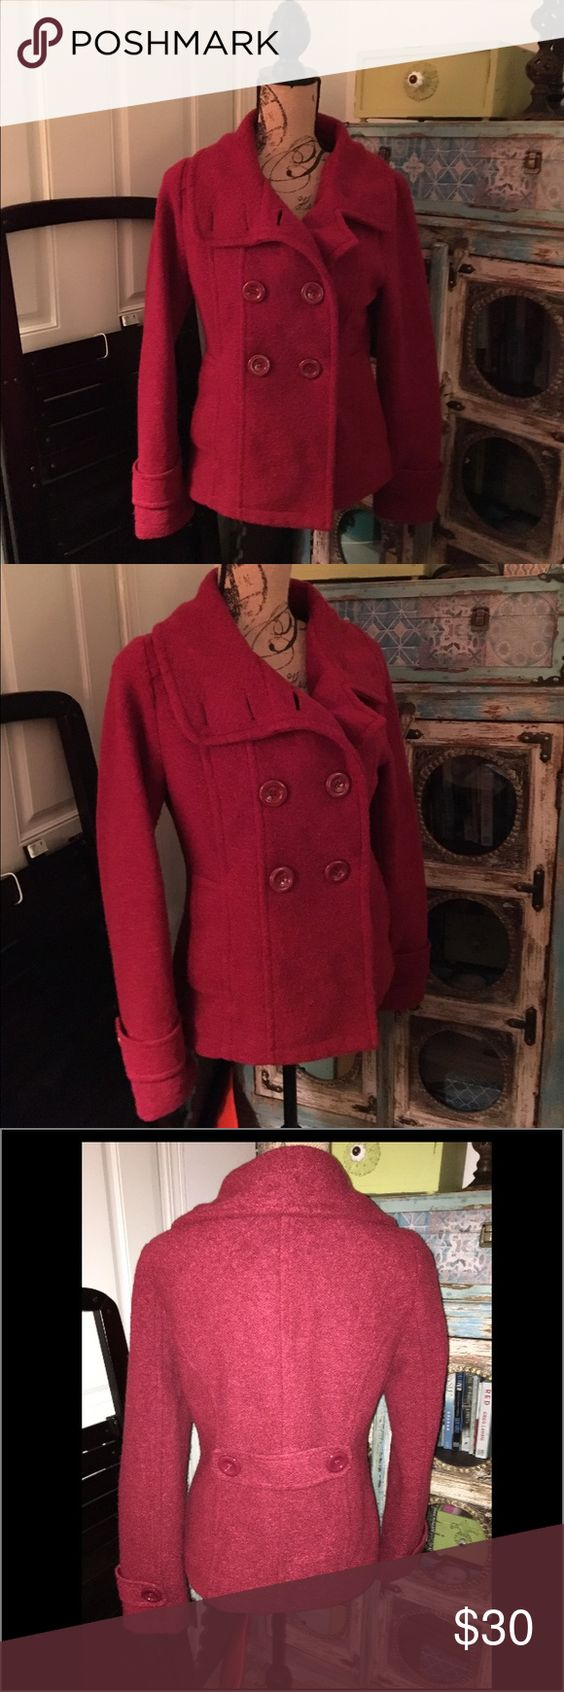 Sashimi from Nordstrom Red Pea Coat M Excellent pre-loved condition! A Pea coat in the perfect Fall color-a dark red-beautiful! No significant flaws to note. Unlined. Sashimi from Nordstrom Jackets & Coats Pea Coats